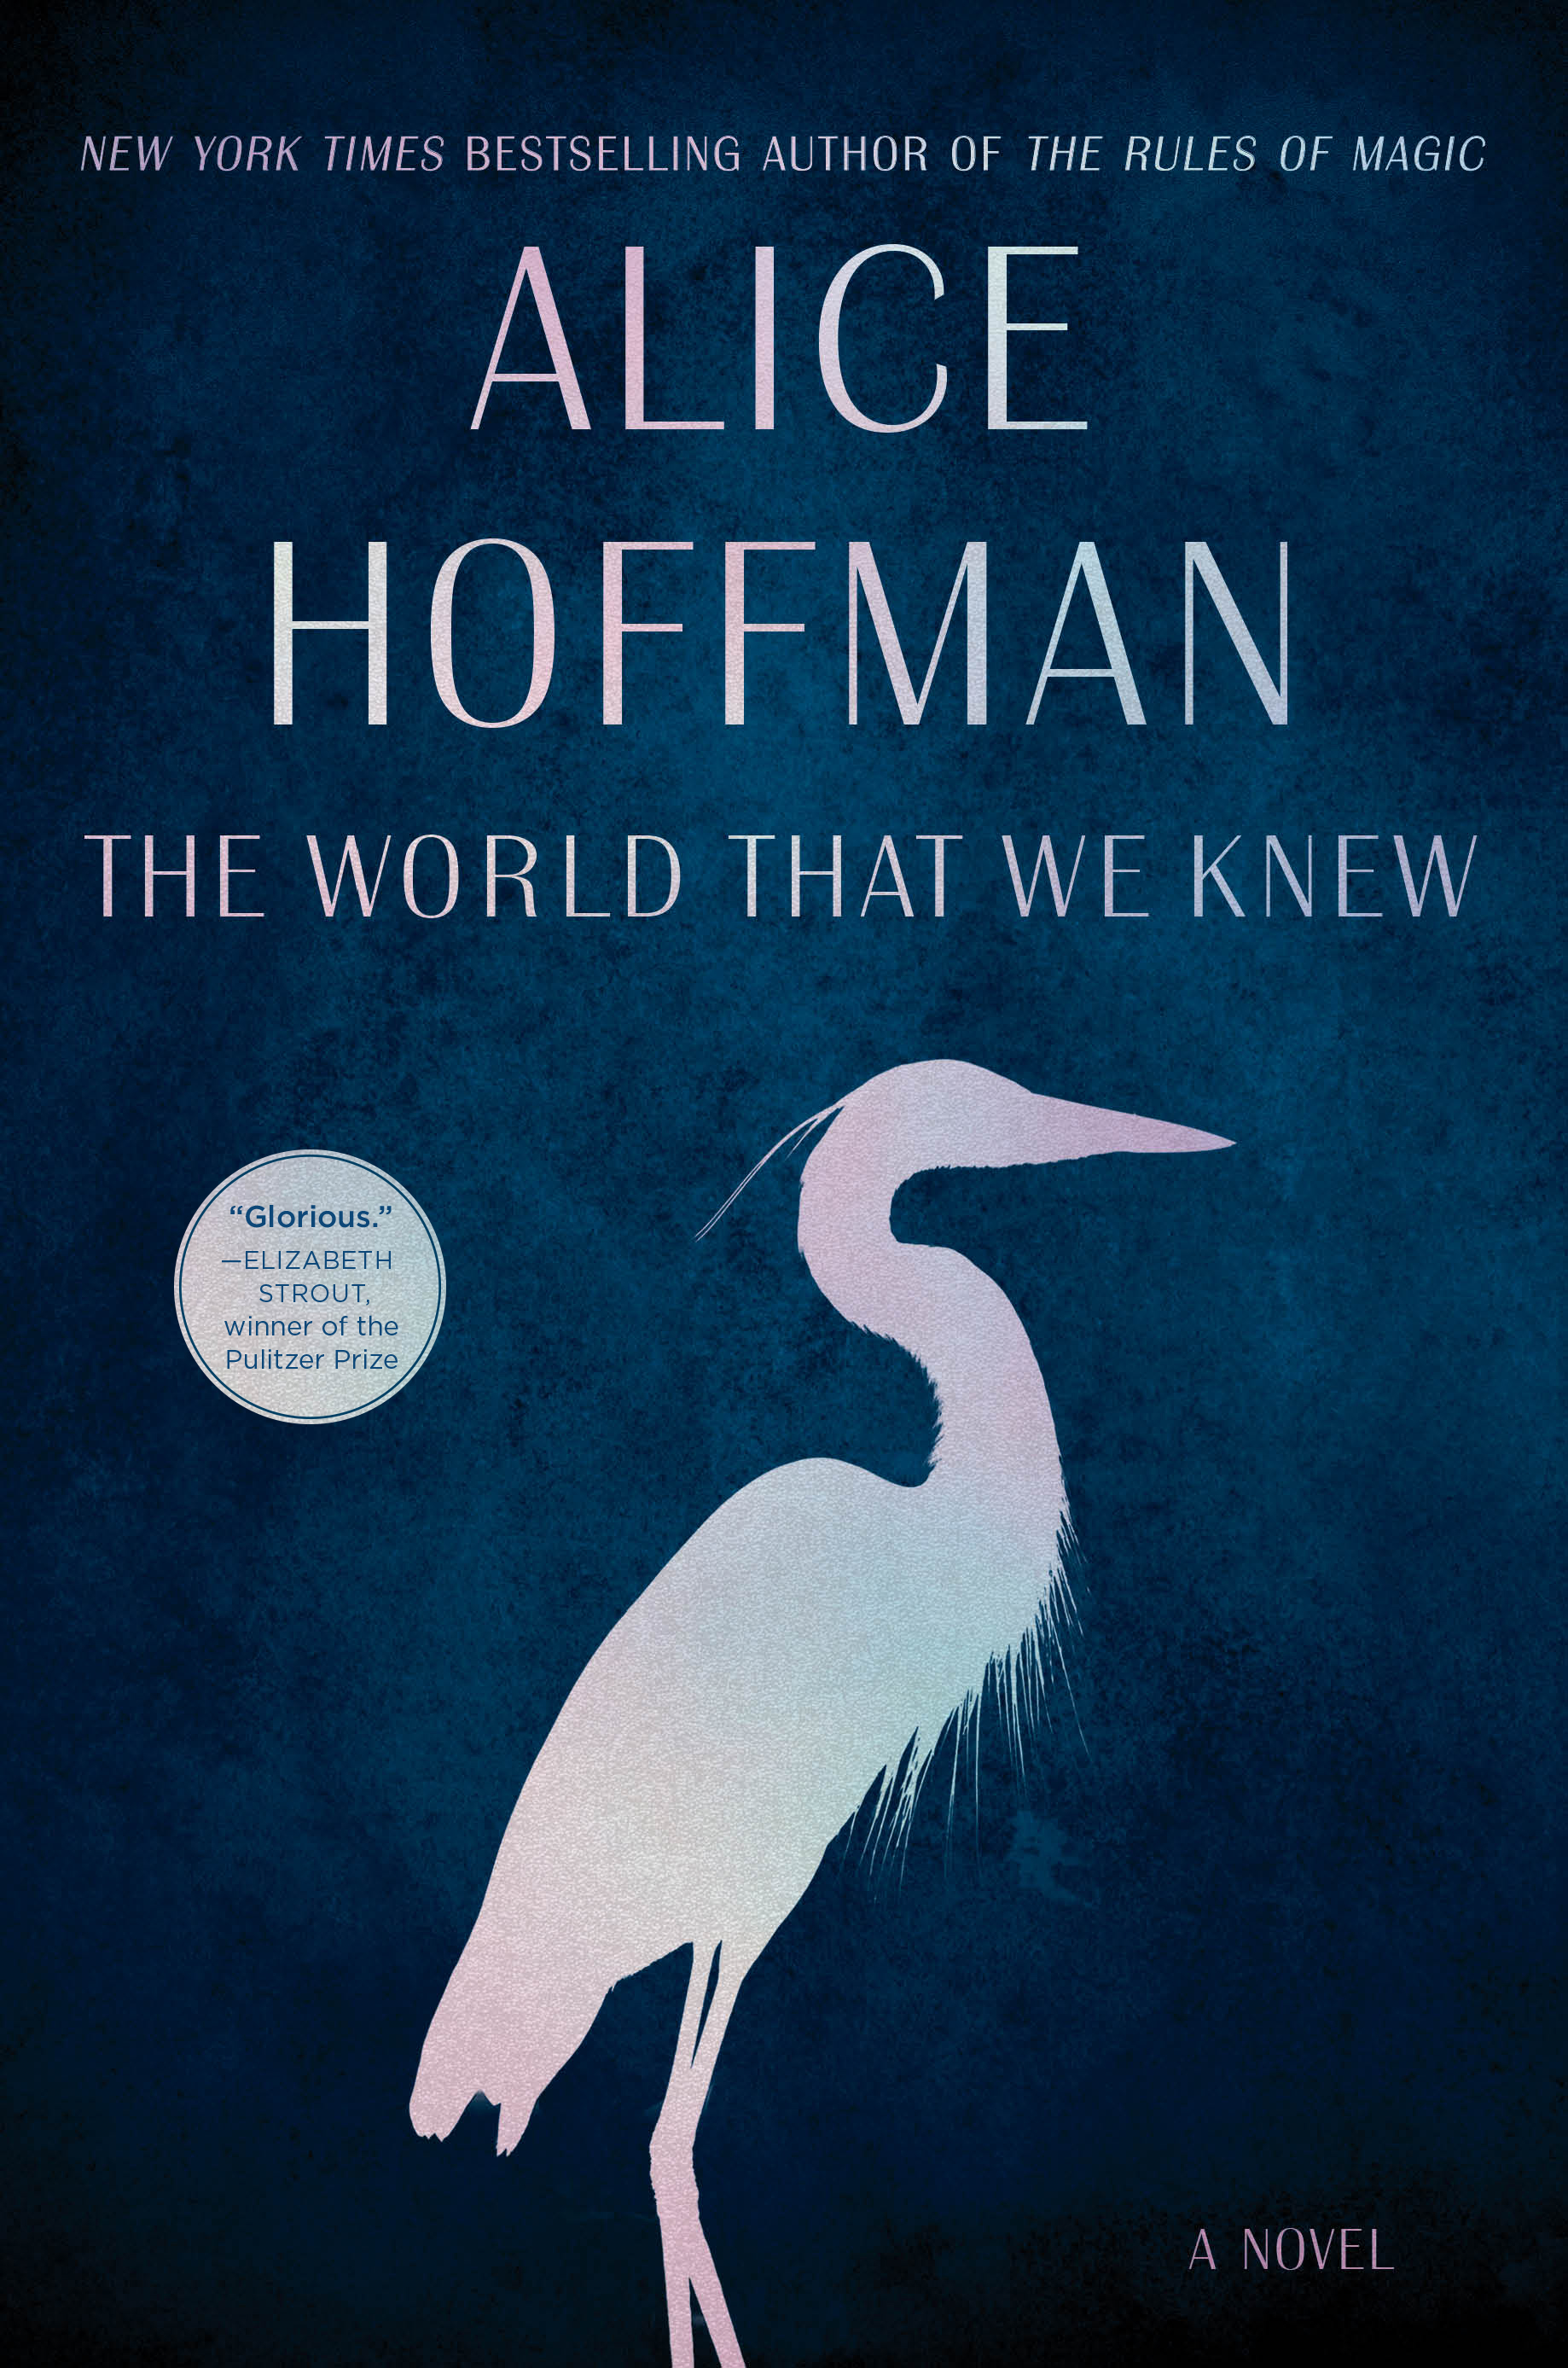 Book cover for The World That We Knew by Alice Hoffman.